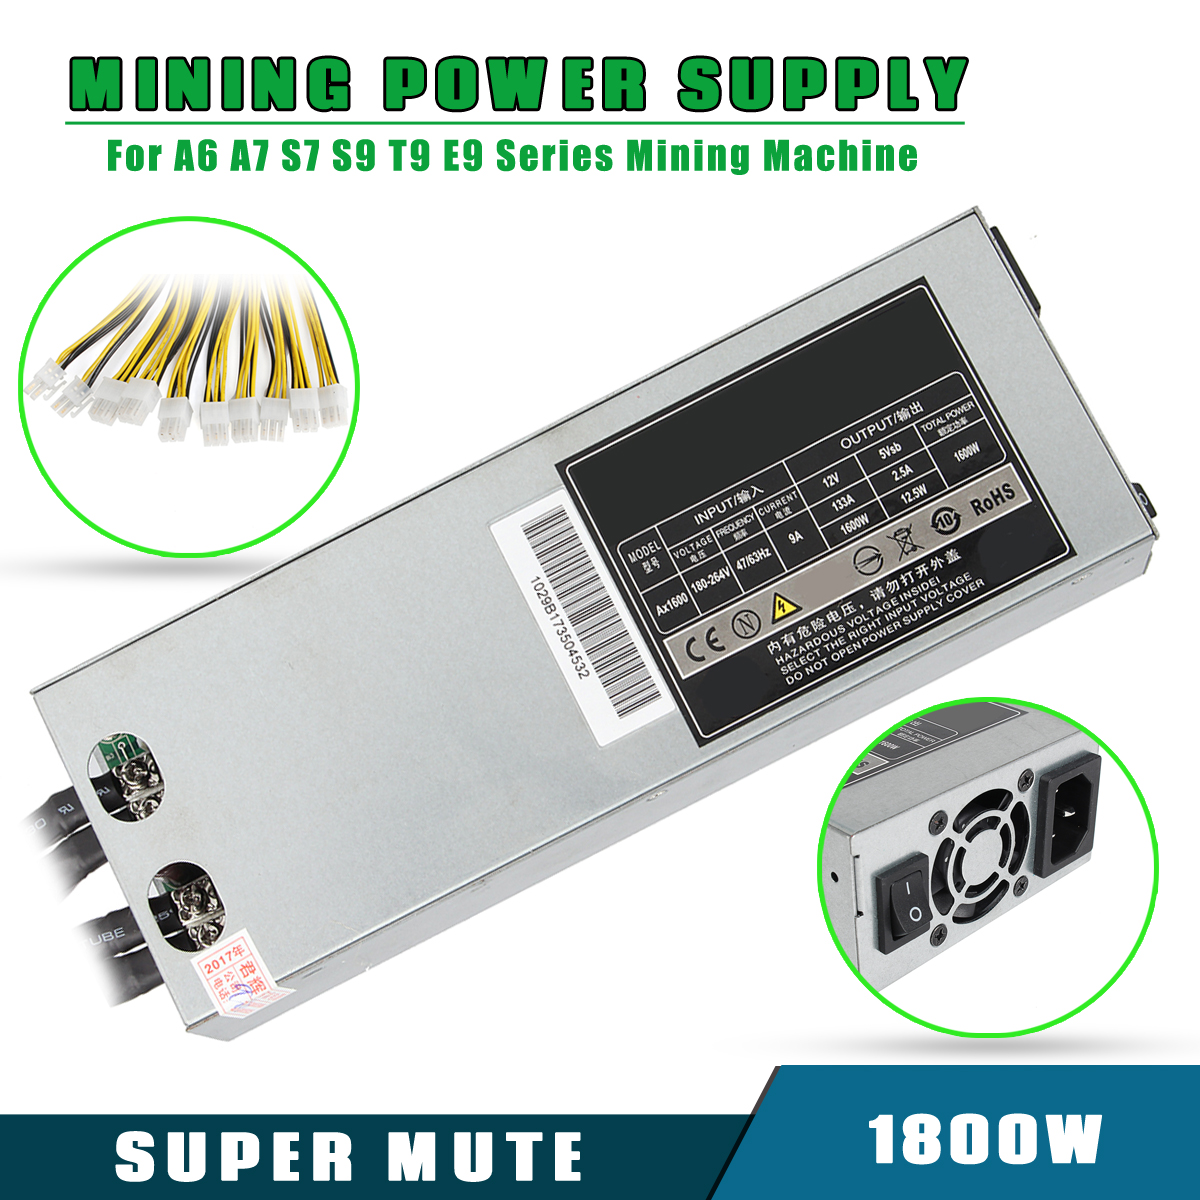 S SKYEE 1800W Power Supply For A6 A7 S7 S9 T9 E9 Series Mining Machine Computer Mining Power Supply With Cable For Miner Mining шины алтайский шинный комбинат forward professional 359 225 75 r16c 121 120n